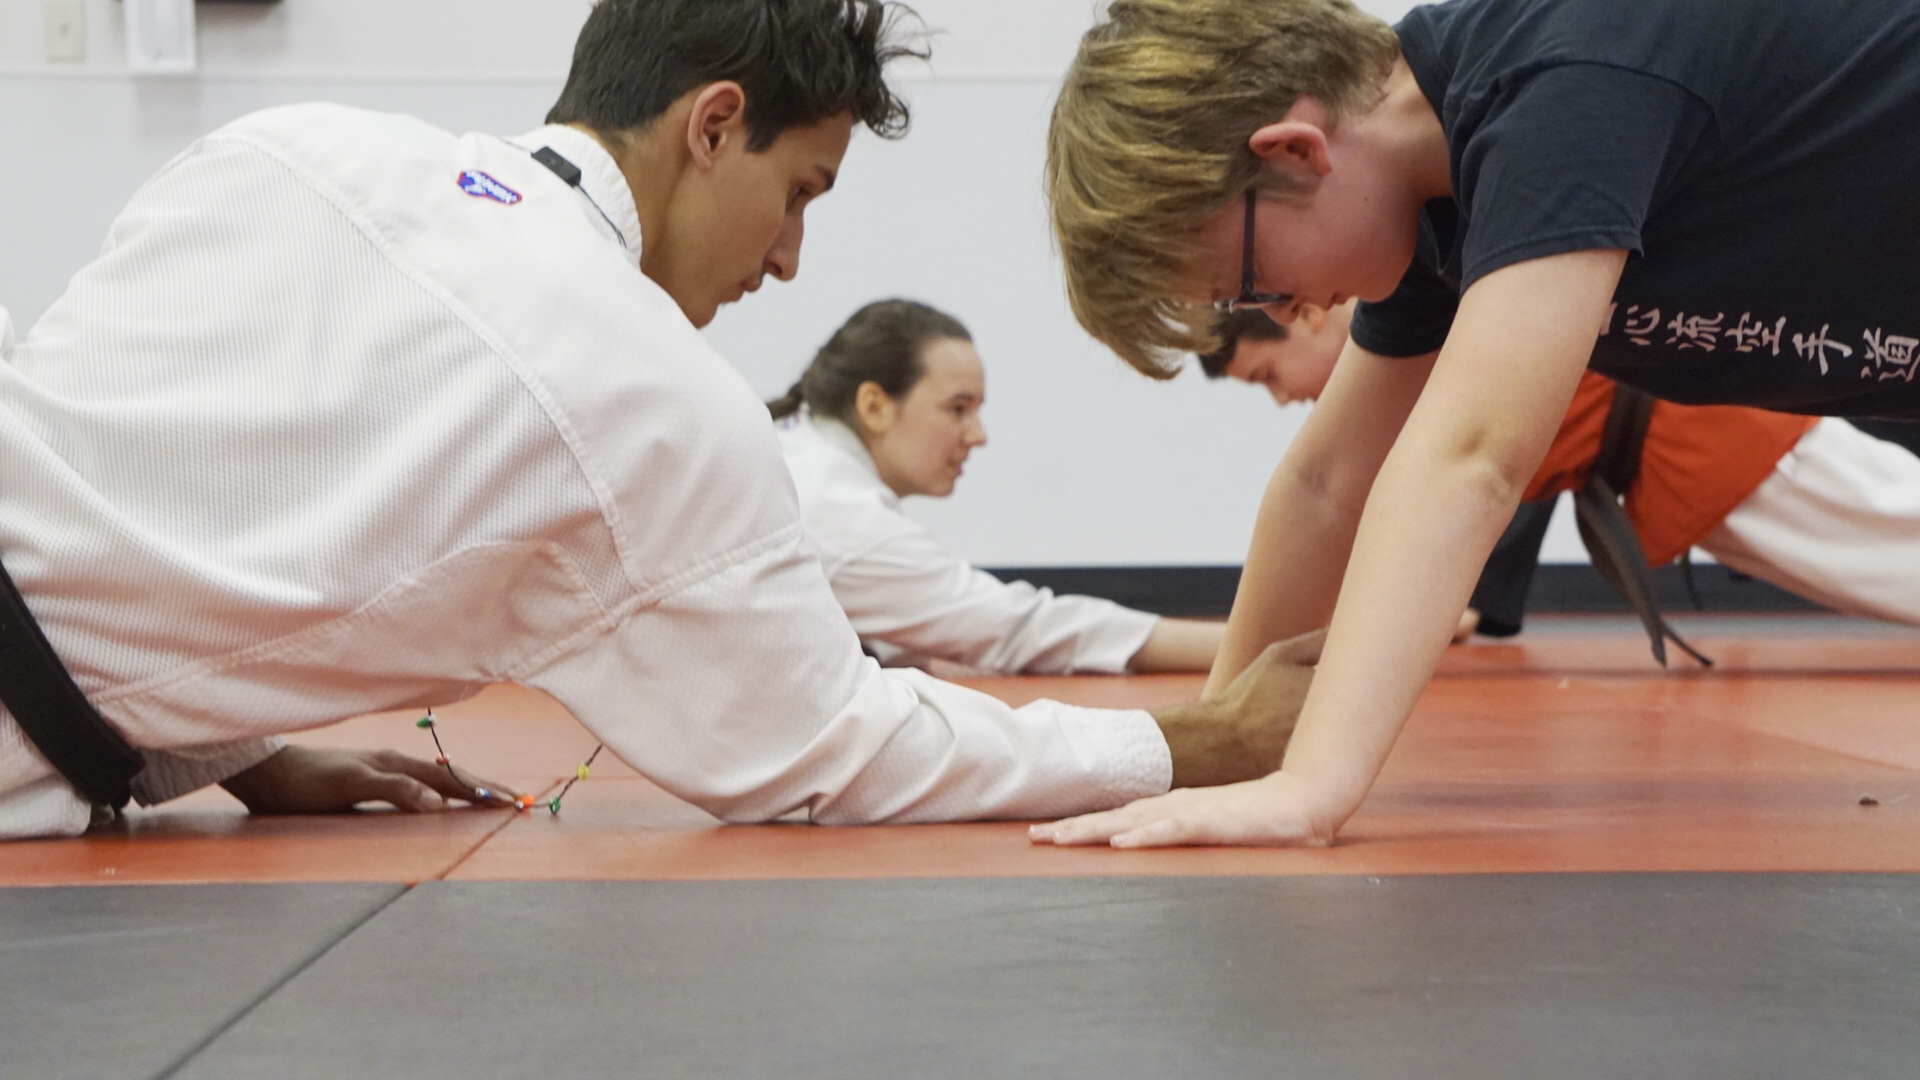 Teen sensei motivates a student during pushups.